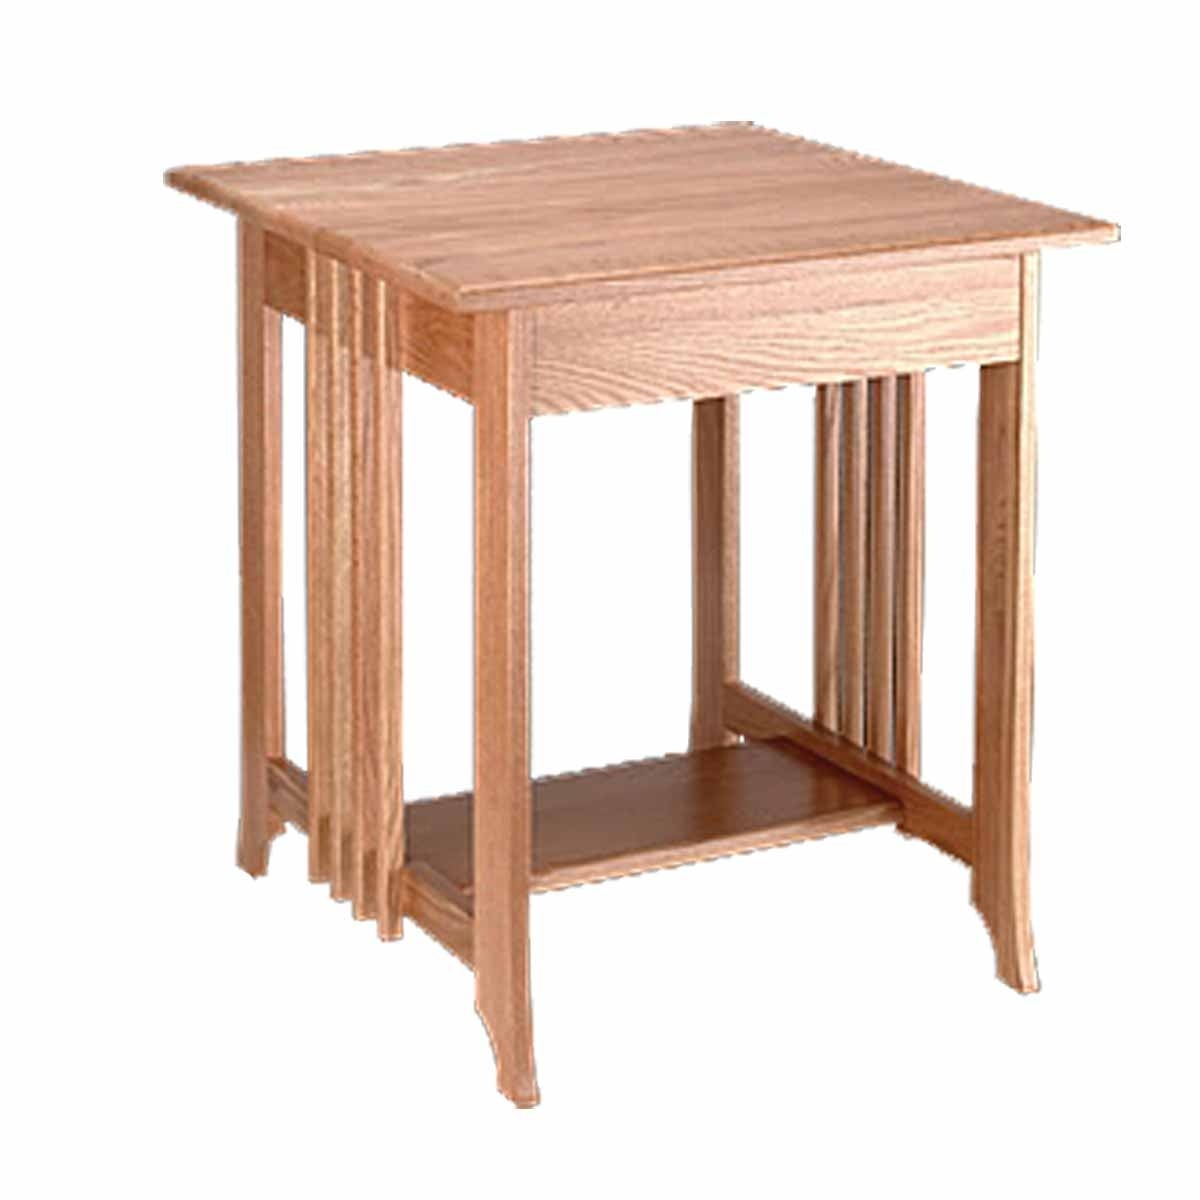 End Tables Living Room Unfinished Oak Mission Table 24 5 Inch Height On Free Shipping Today 13300553